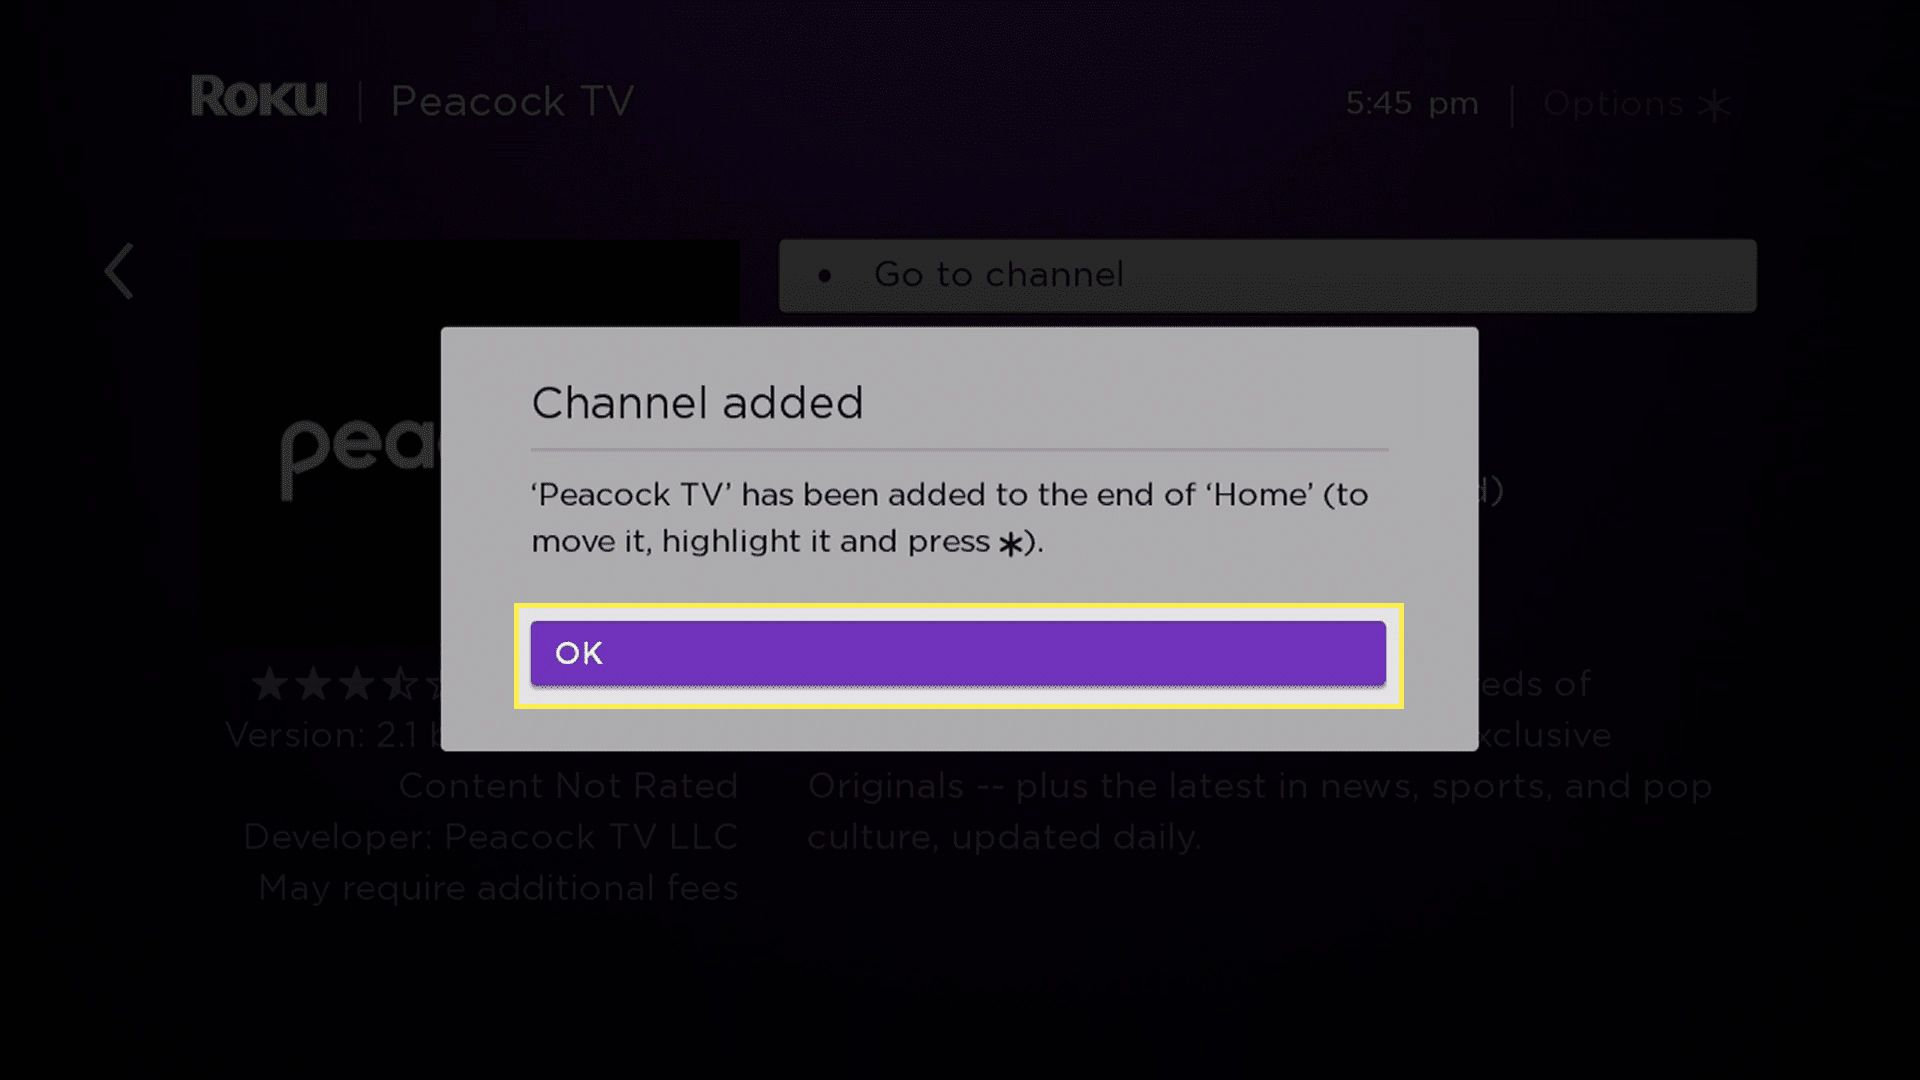 OK highlighted on the channel added alert on Roku TV.